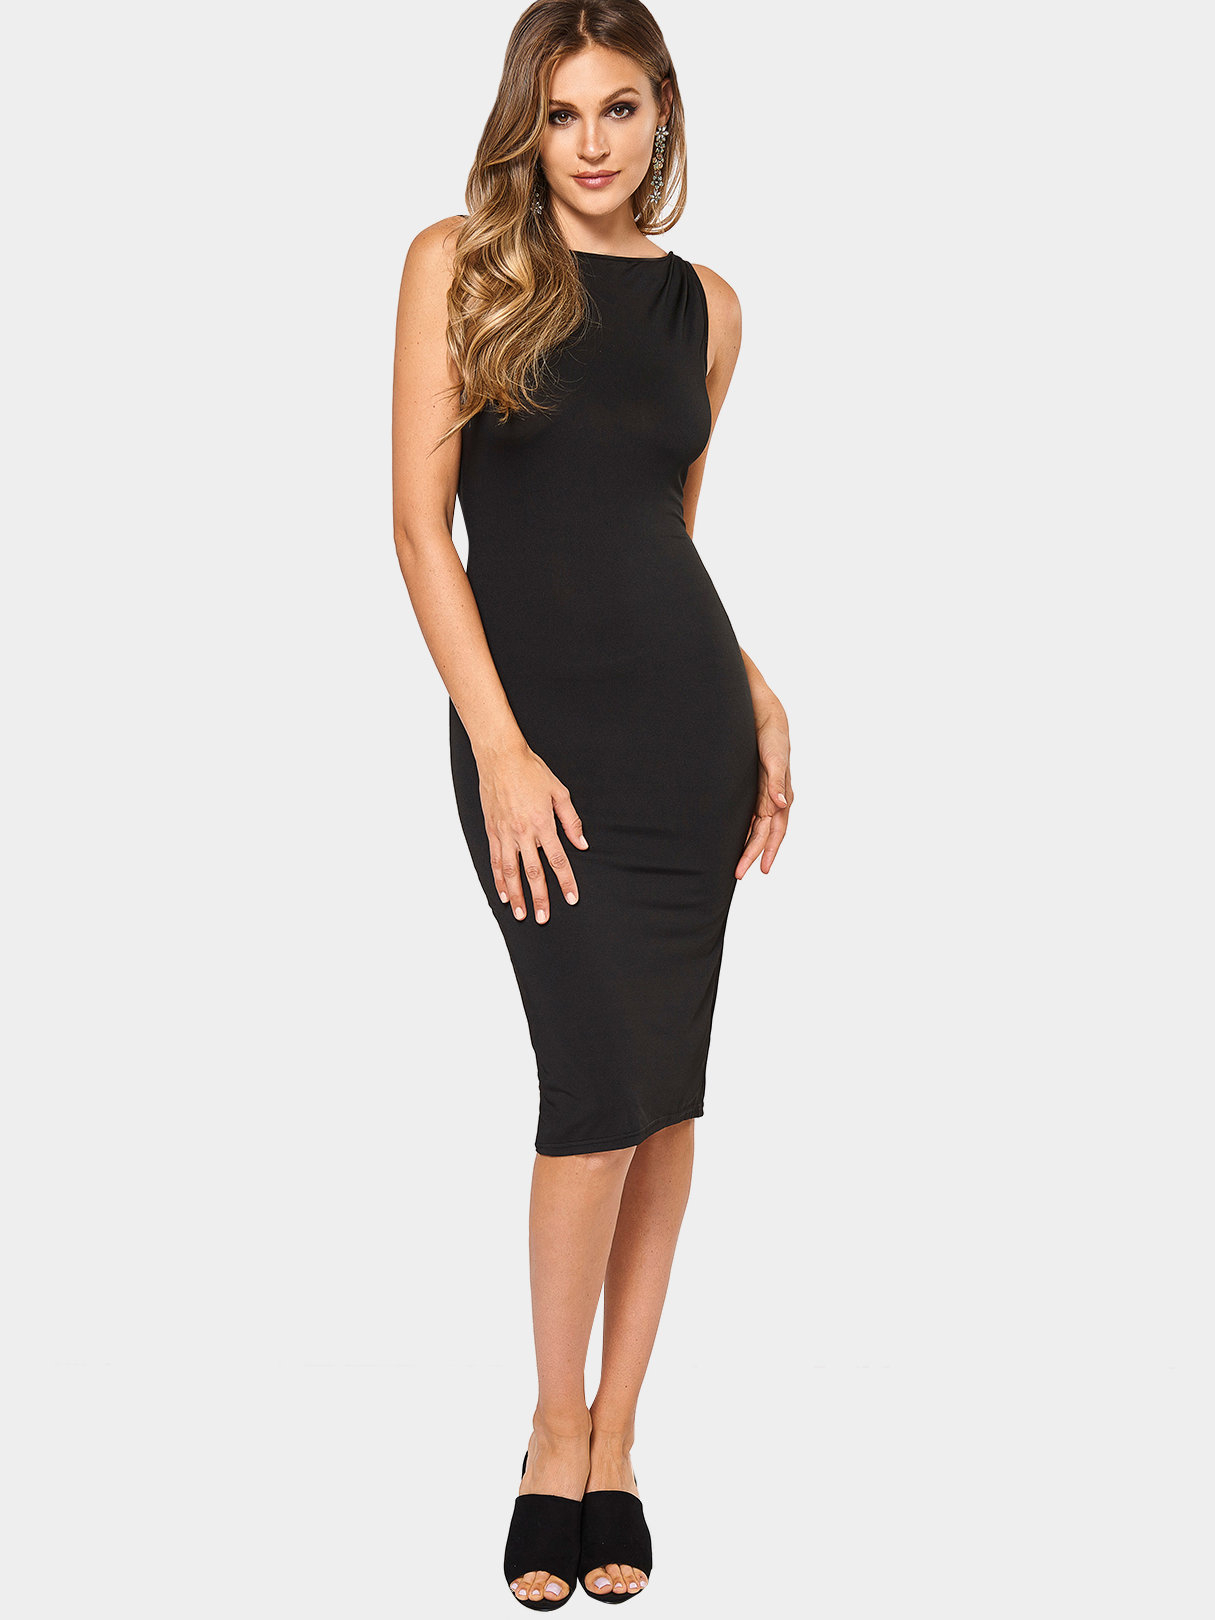 Black Fashion Round Neck Zip Front Bodycon Cami Dress fashion black zipper front lace outerwear